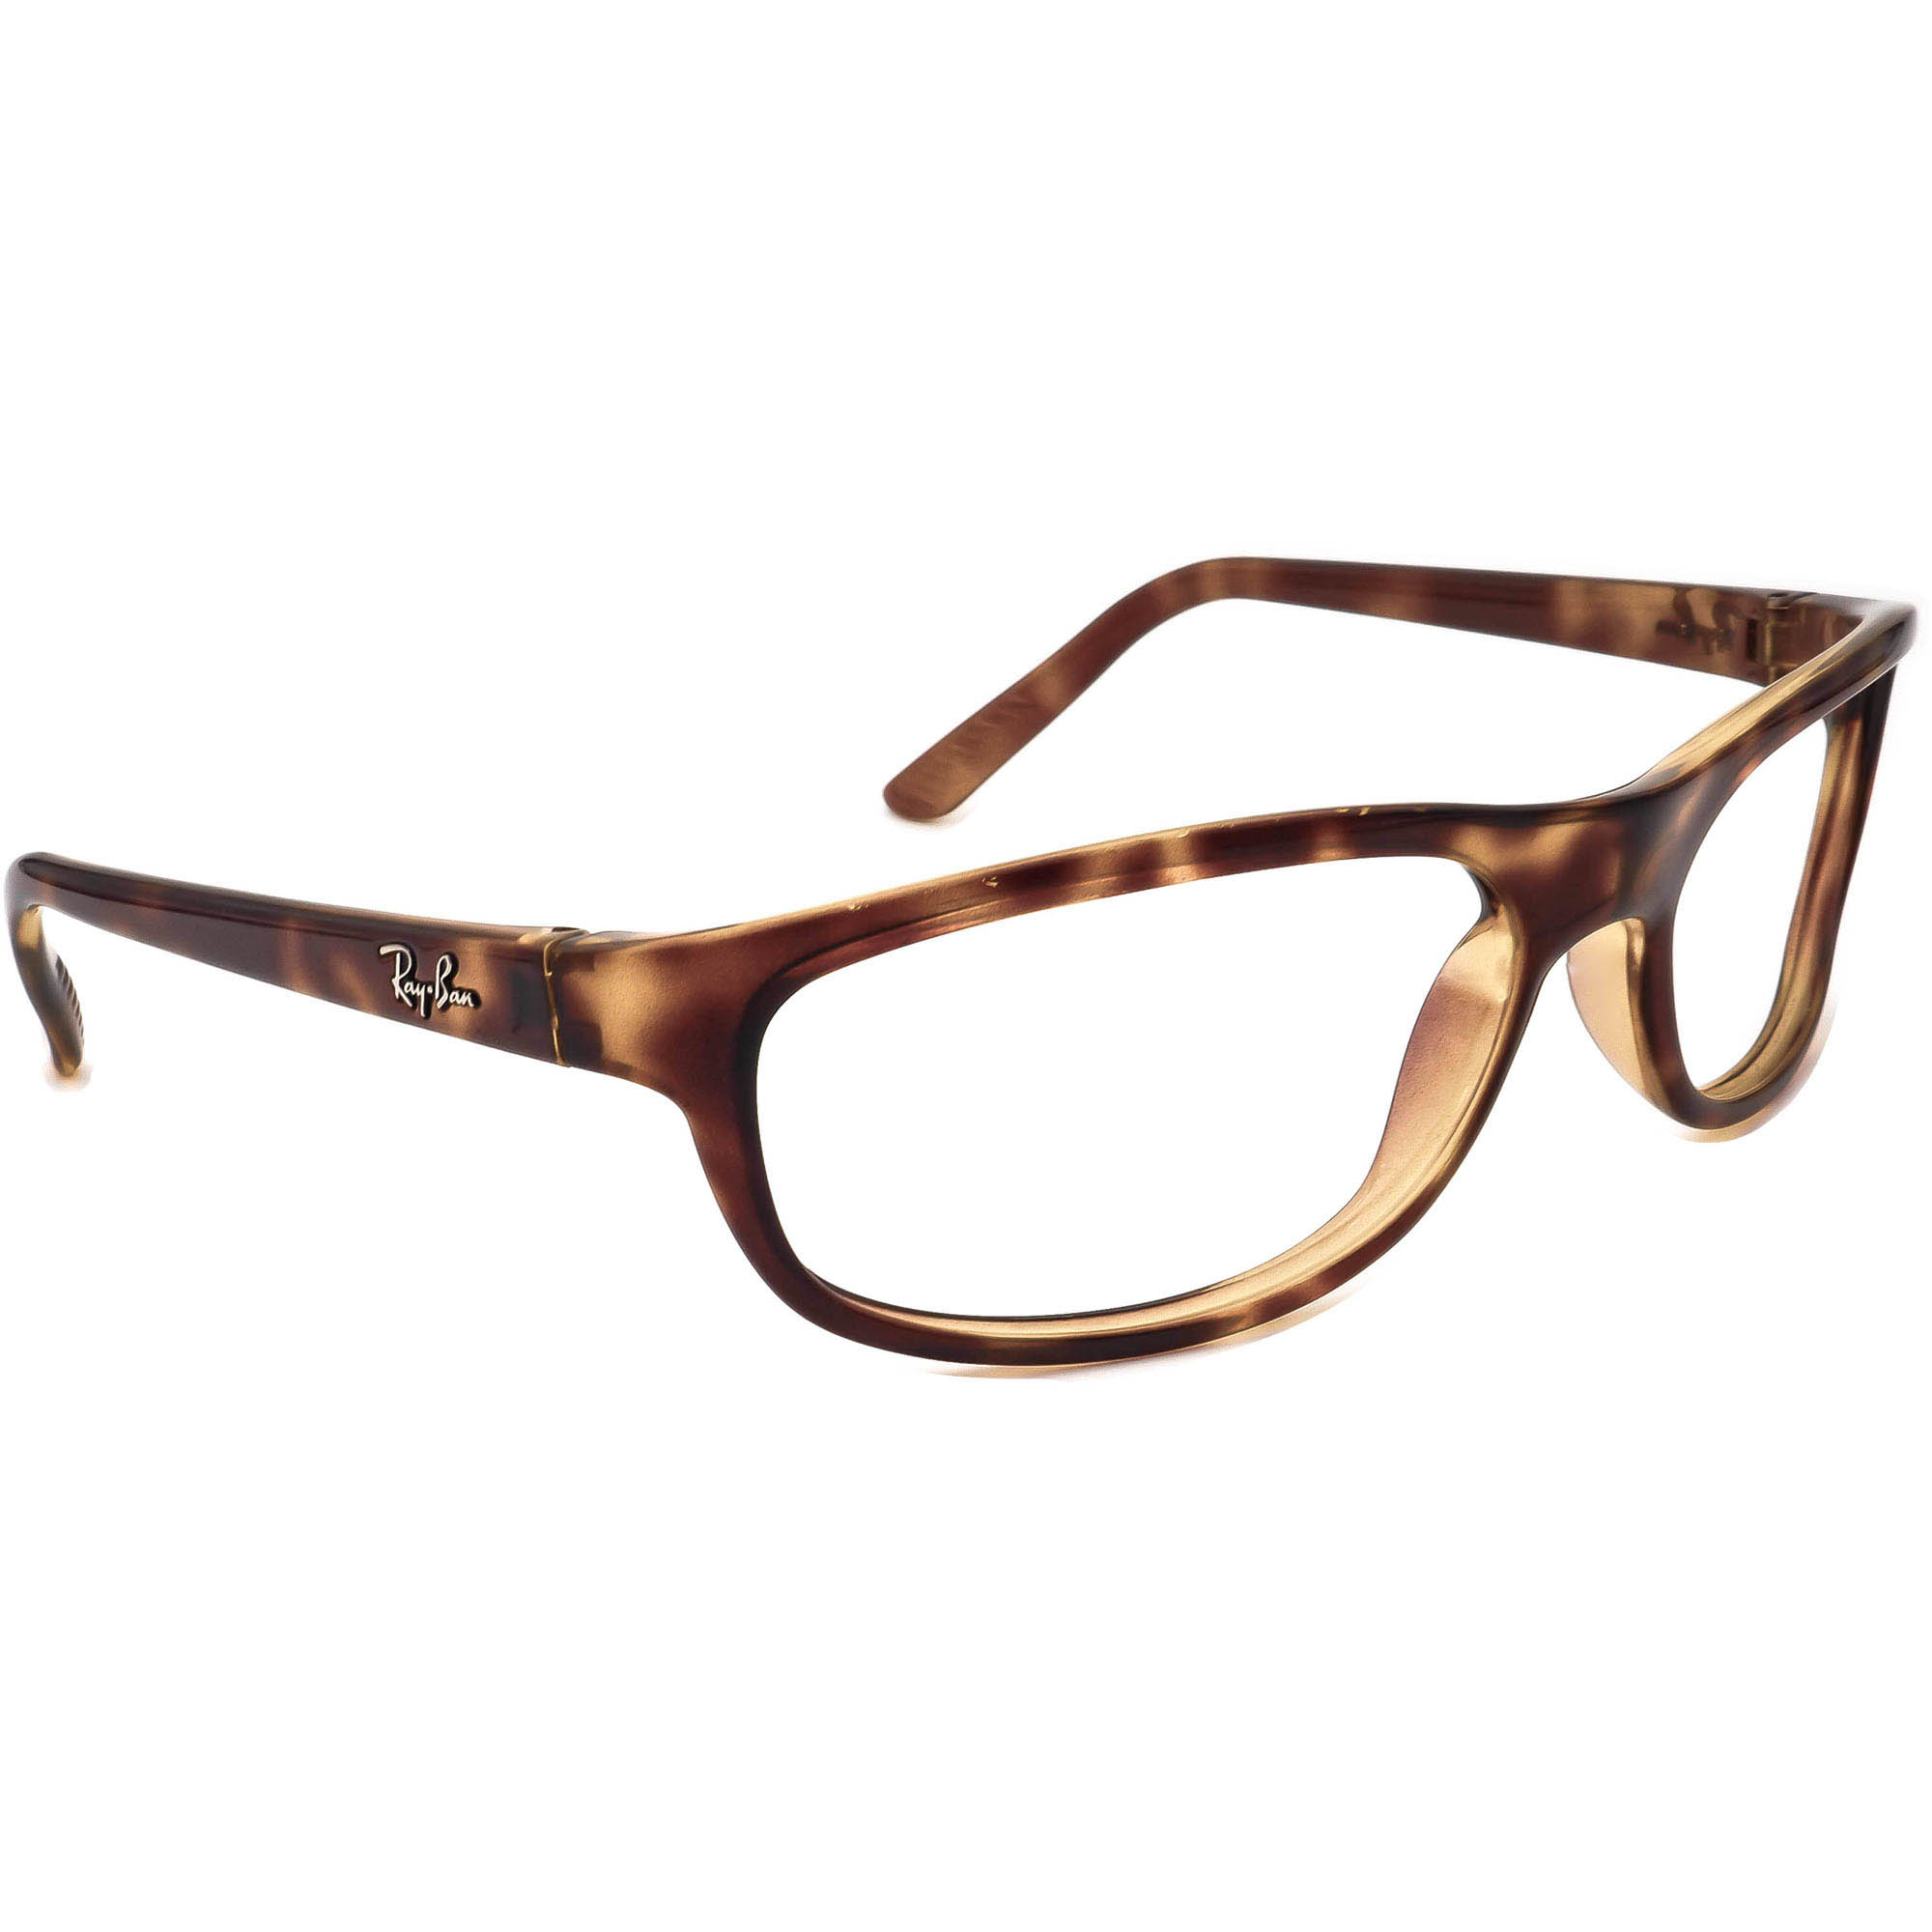 Ray-Ban RB 4114 642 Sunglasses Frame Only